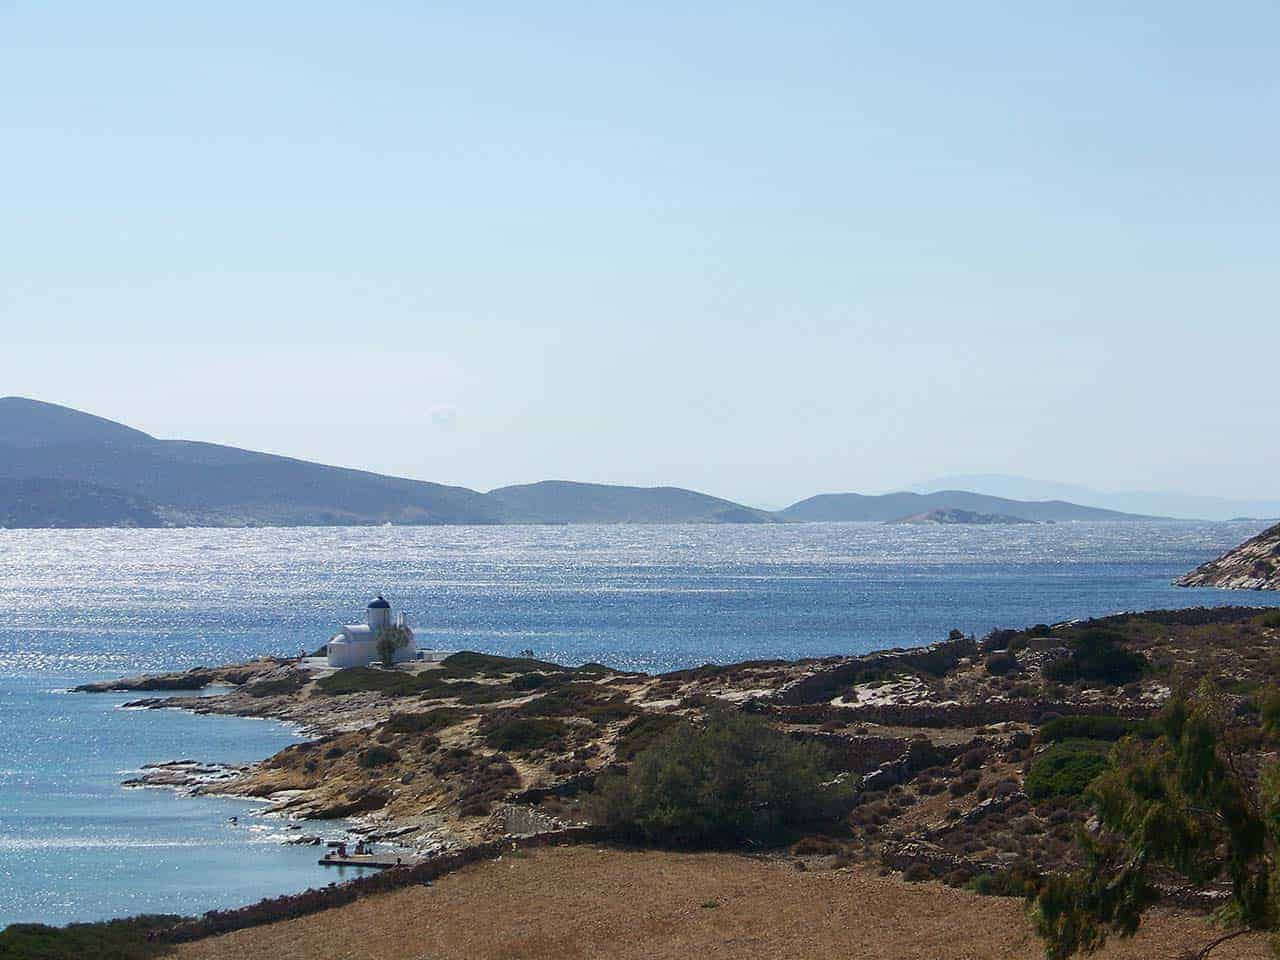 The church of Agios Panteleimonas-Amorgos